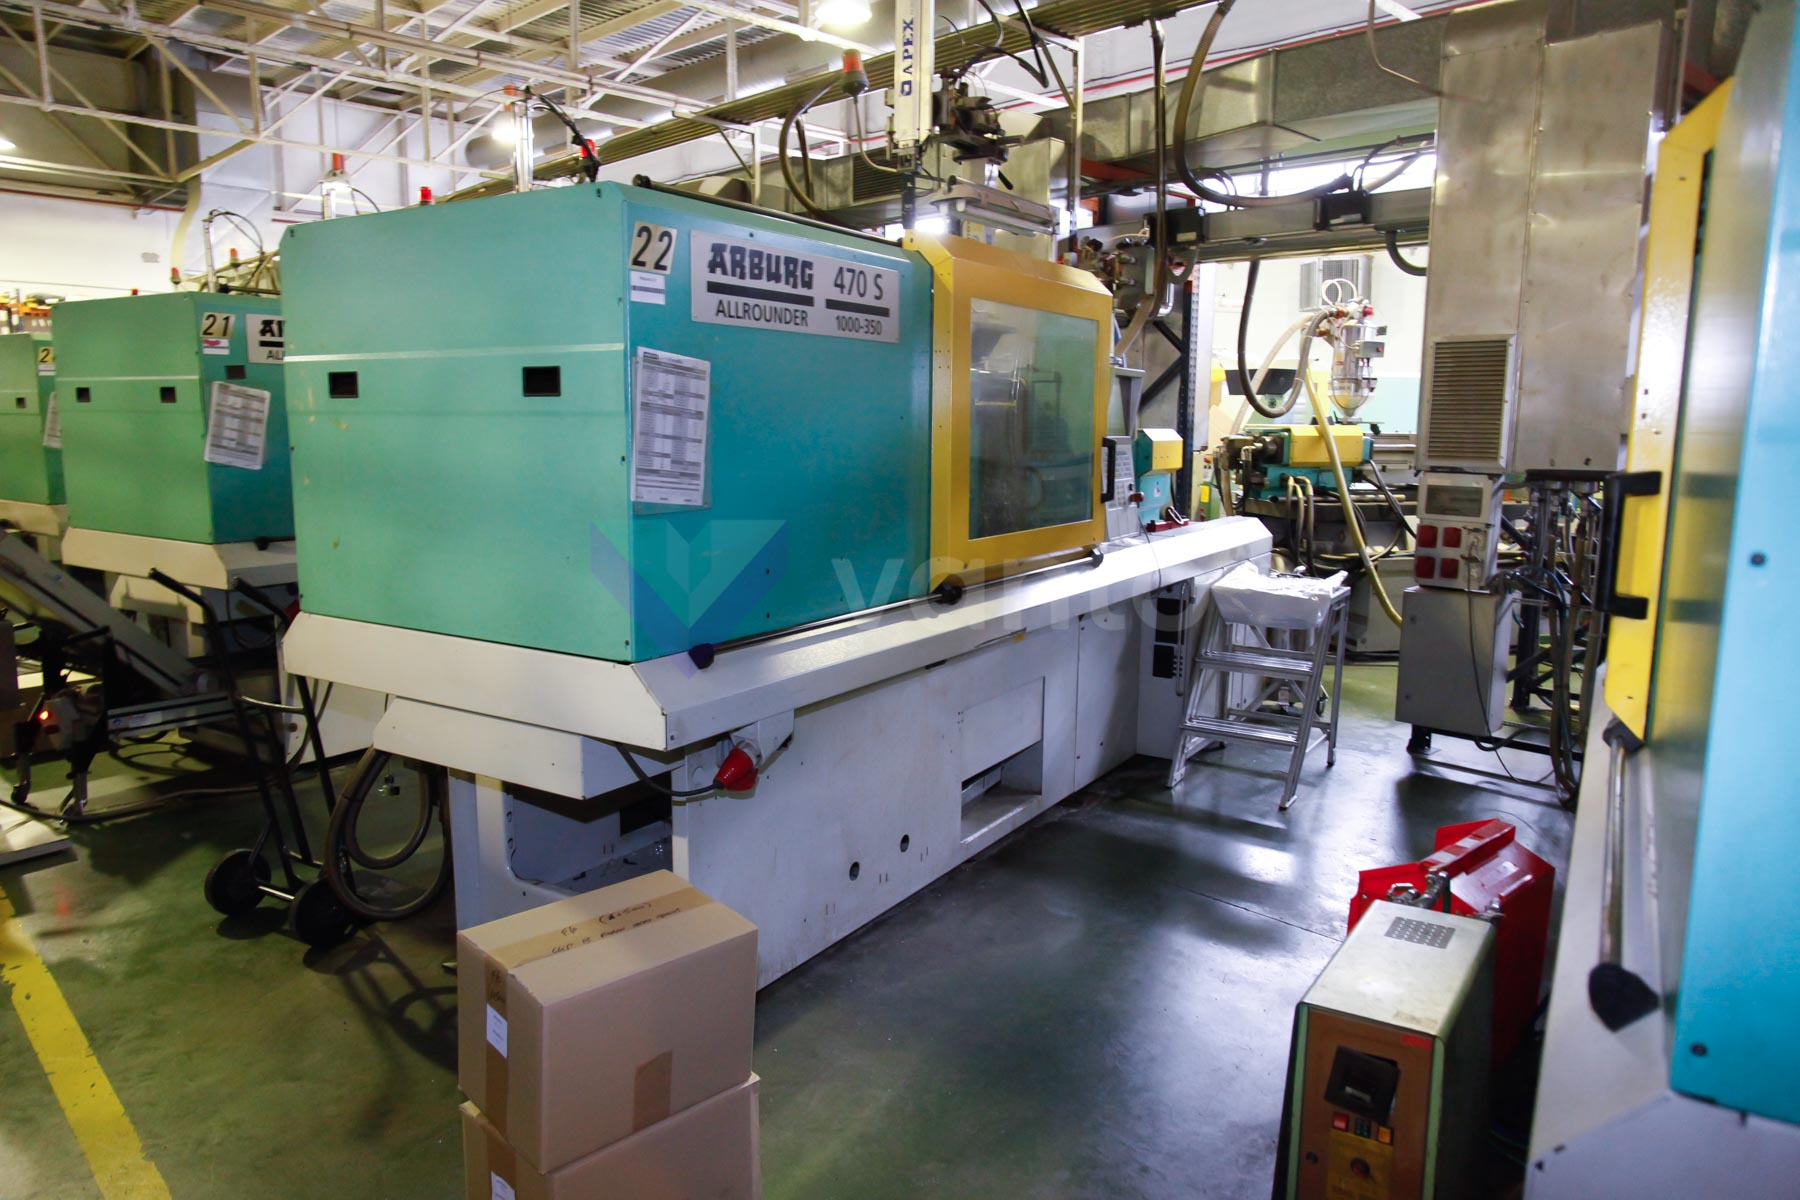 ARBURG 470 S ALLROUNDER 1000 - 350 100t injection molding machine (2002) id4540